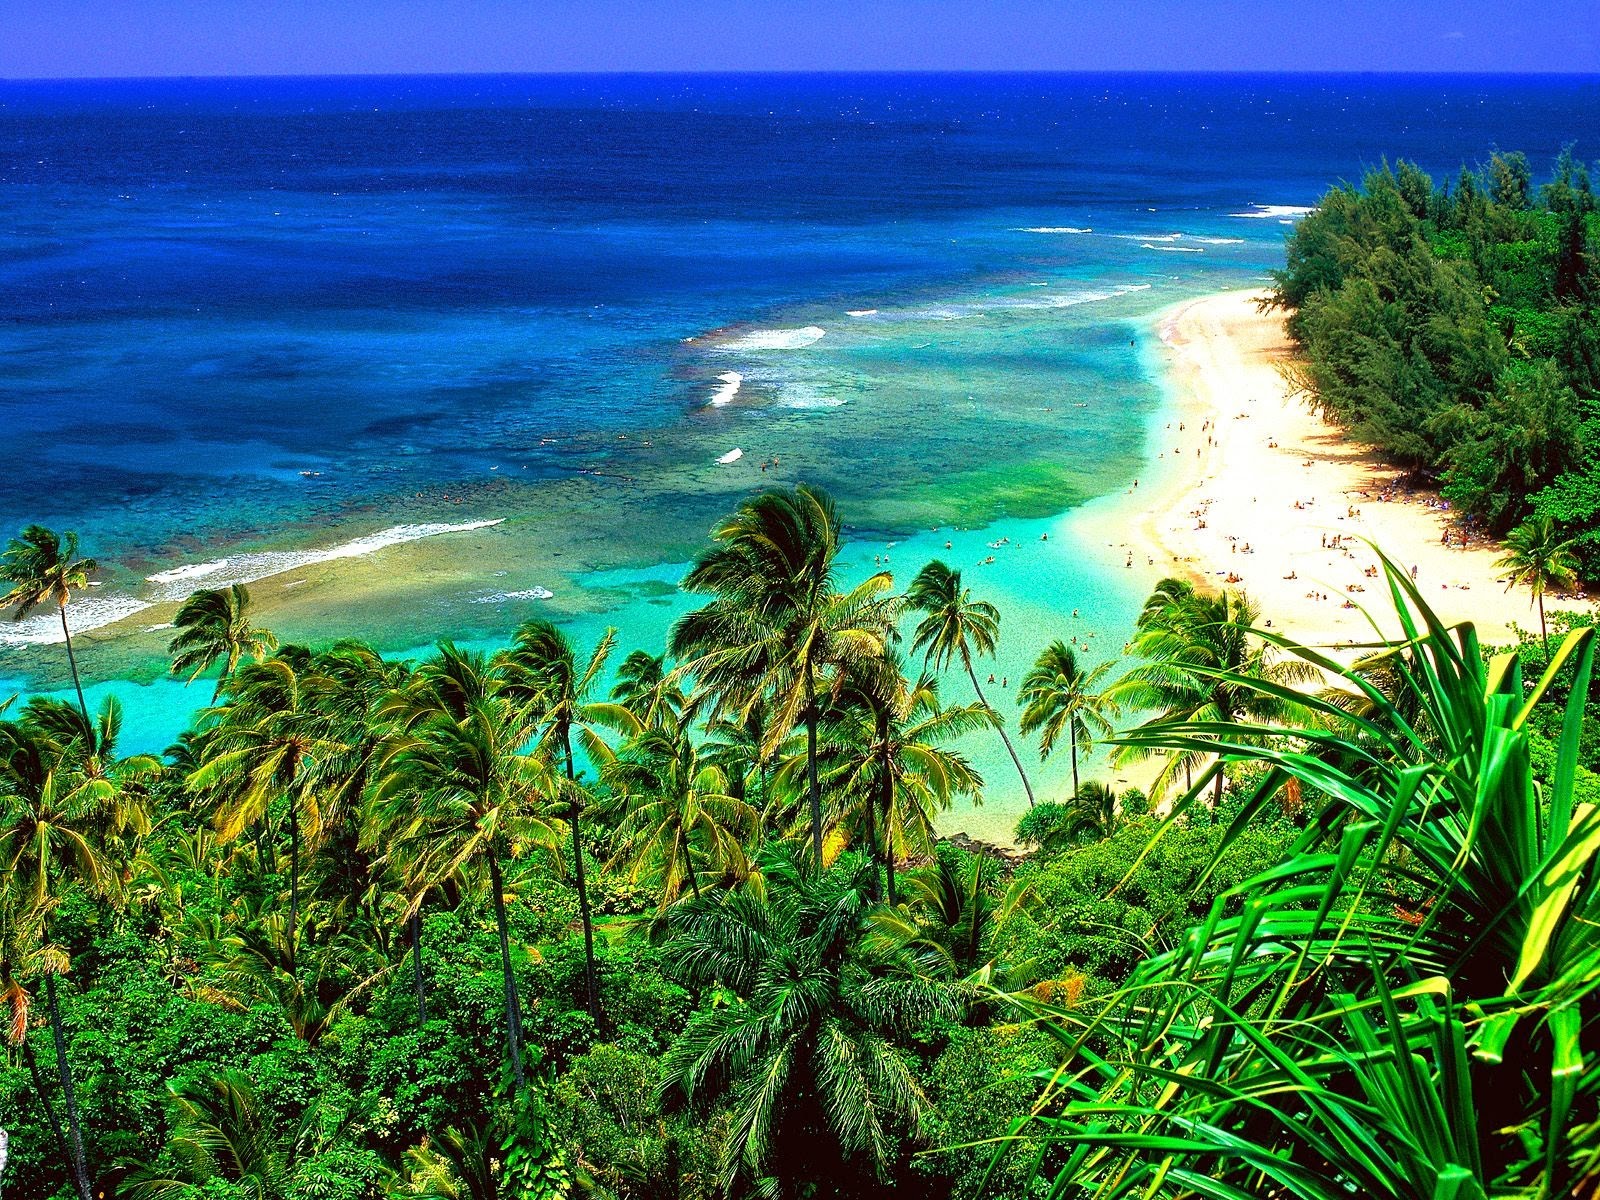 Beach Events Kauai Hawaii Coconut Festival In Kappa Hawaiian Islands